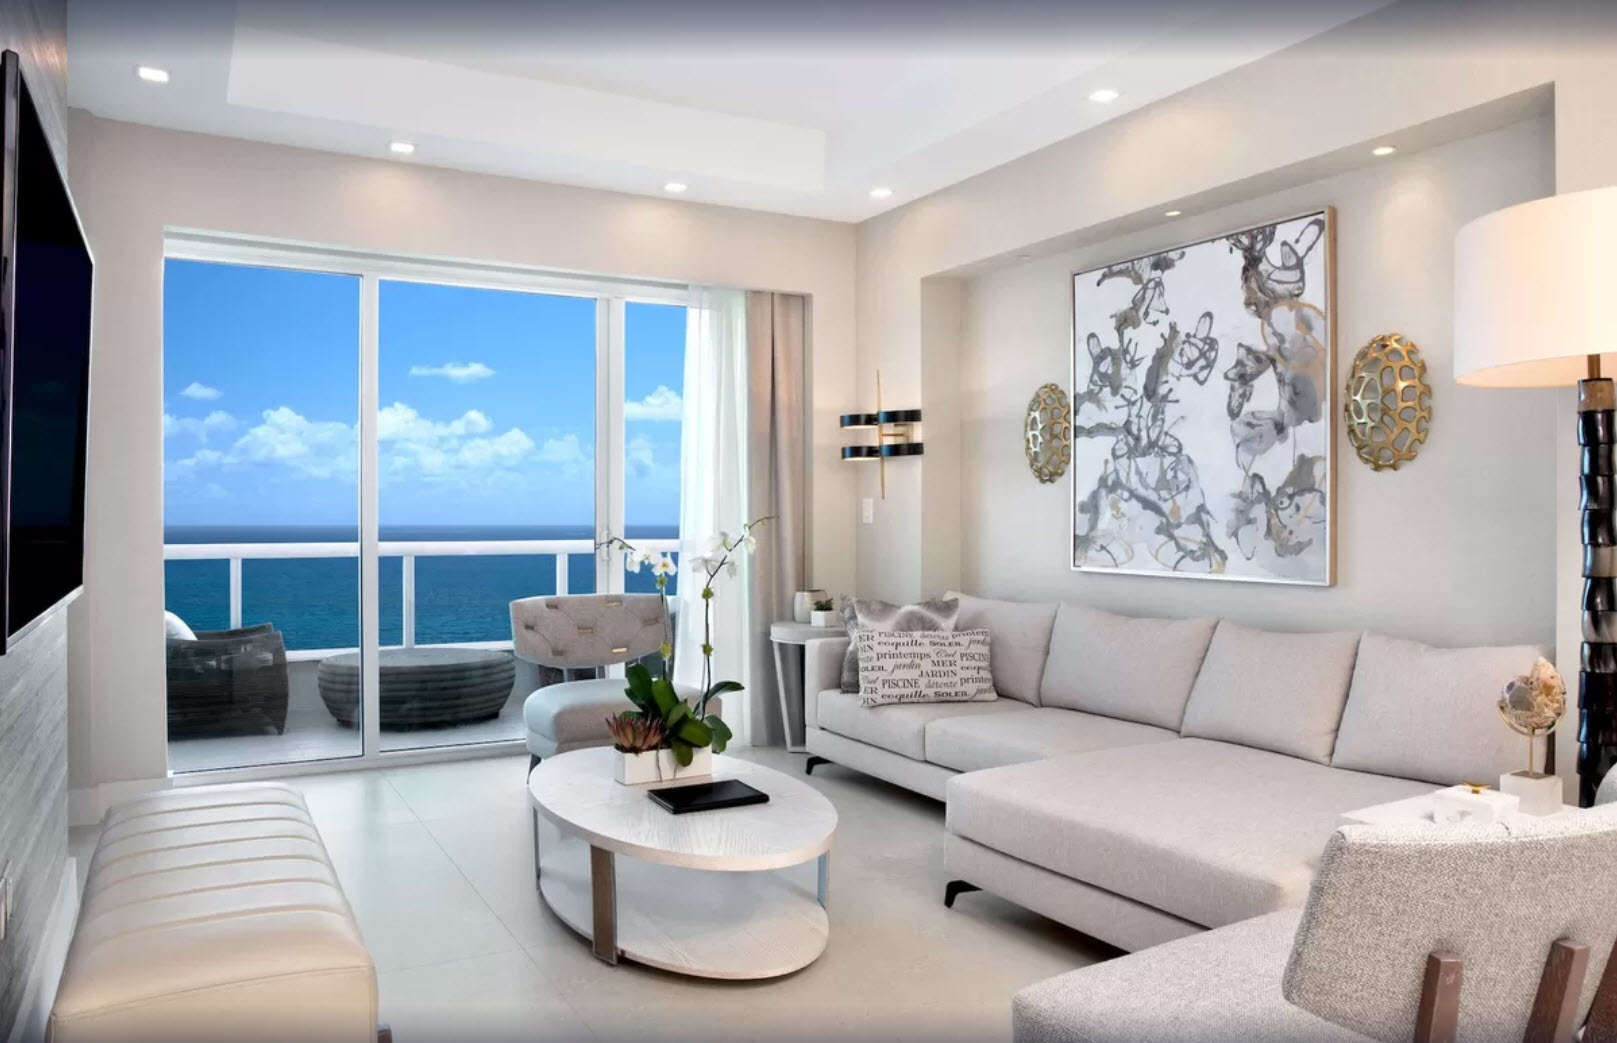 Luxury vacation rentals usa - Florida - Fort lauderdale - Conrad fort lauderdale beach - 2 BDM Oceanfront Penthouse - Image 1/10